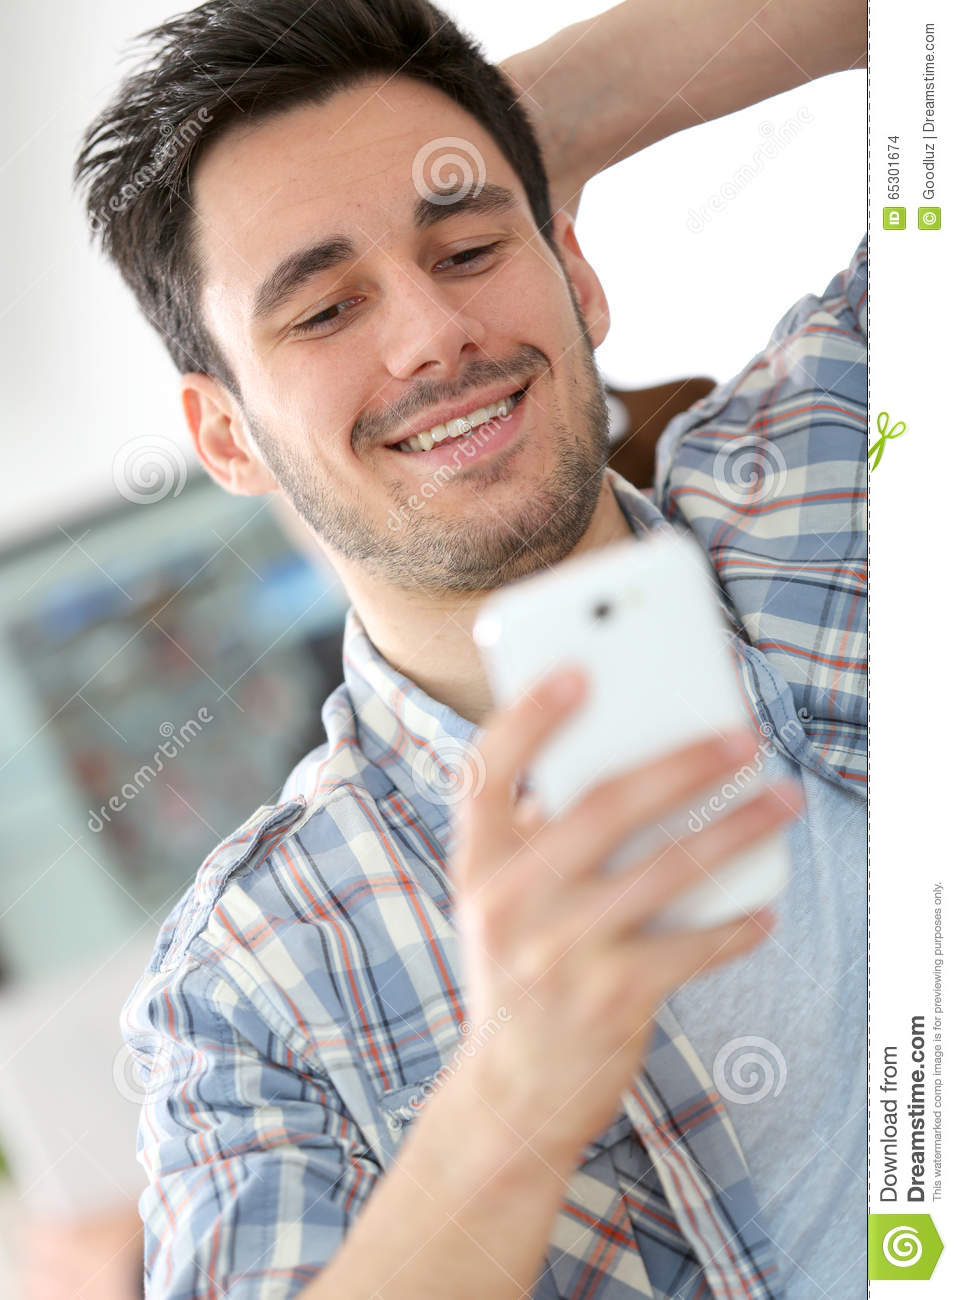 Smiling office worker with smartphone